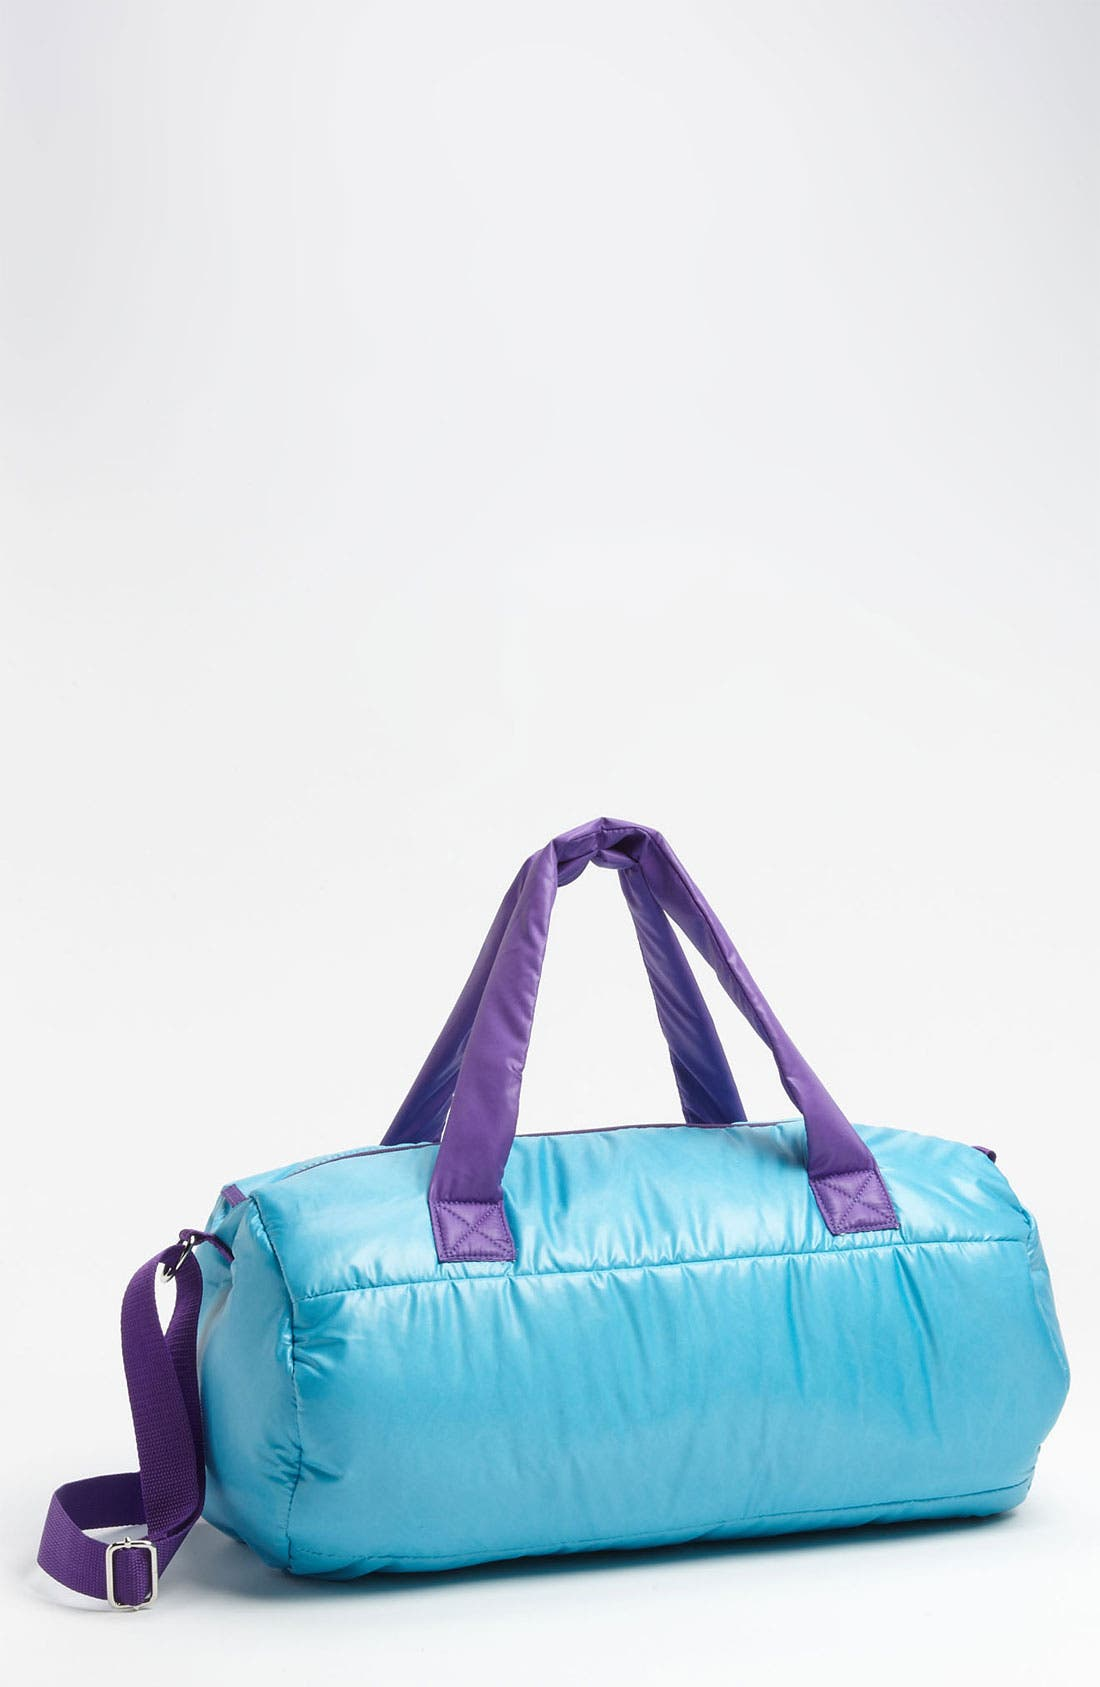 Alternate Image 1 Selected - Fantasia Accessories 'Sleepover' Bag (Girls)